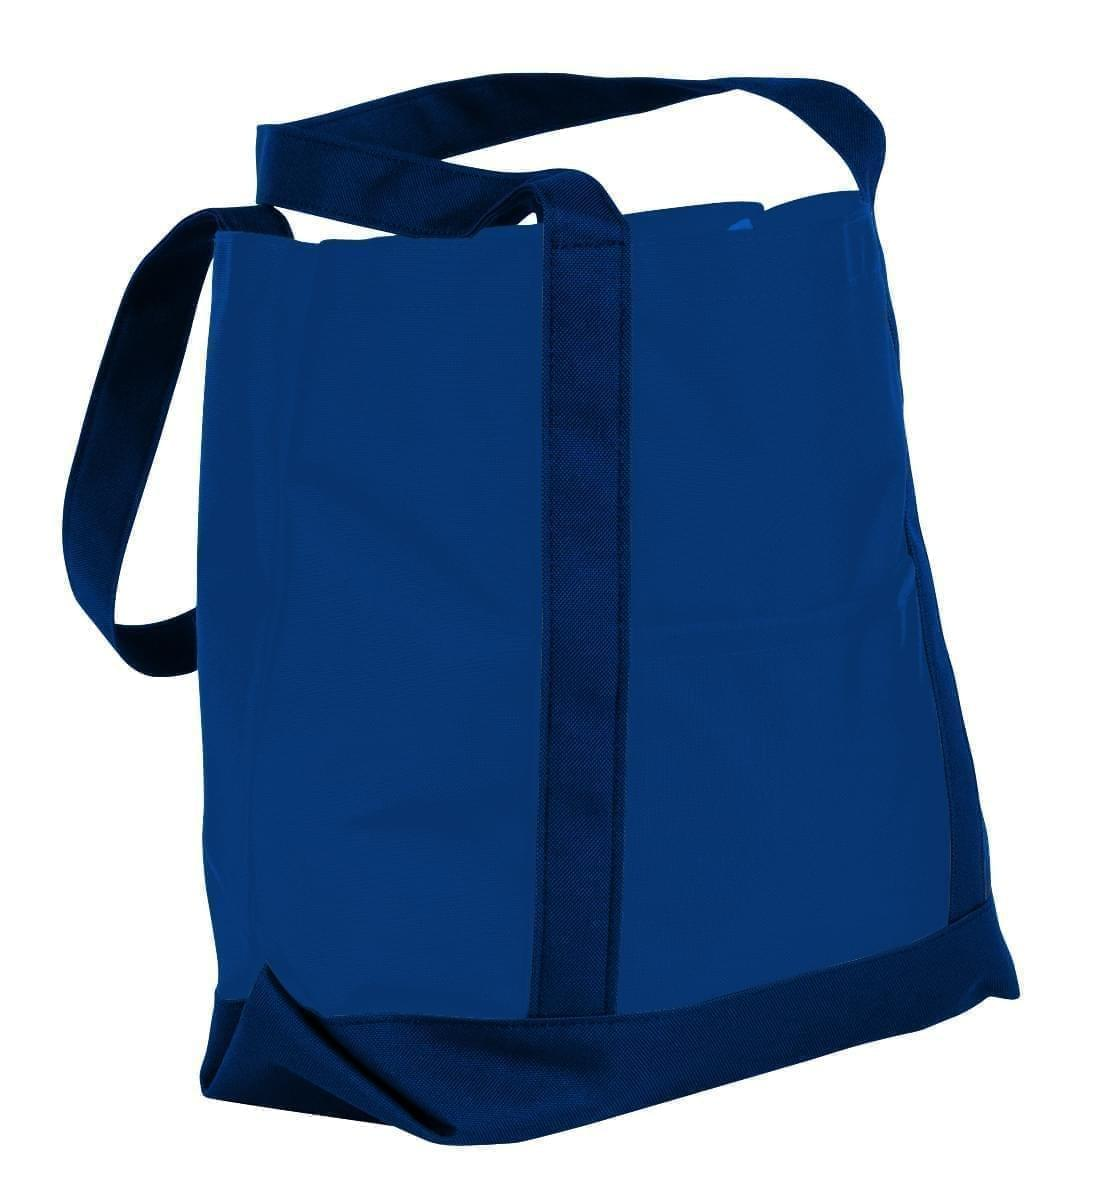 USA Made Nylon Poly Boat Tote Bags, Royal Blue-Navy, XAACL1UA0I